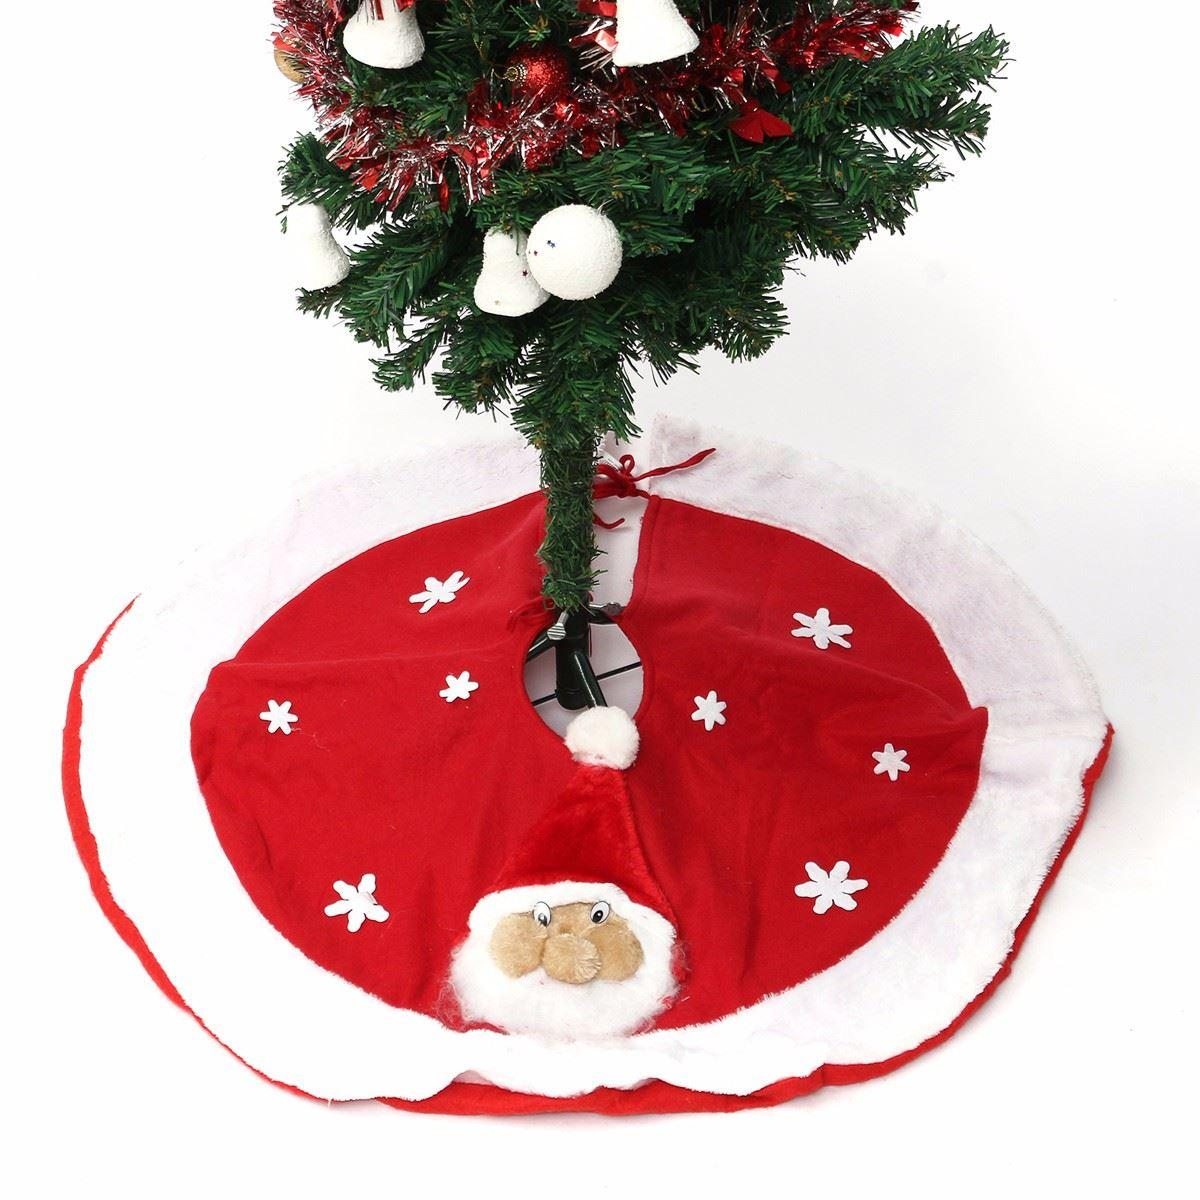 wholesale christmas tree skirt non woven aprons stand ornament xmas party decor navidad christmas decorations home straight edge 80cm christmas yard decor - Wholesale Christmas Yard Decorations